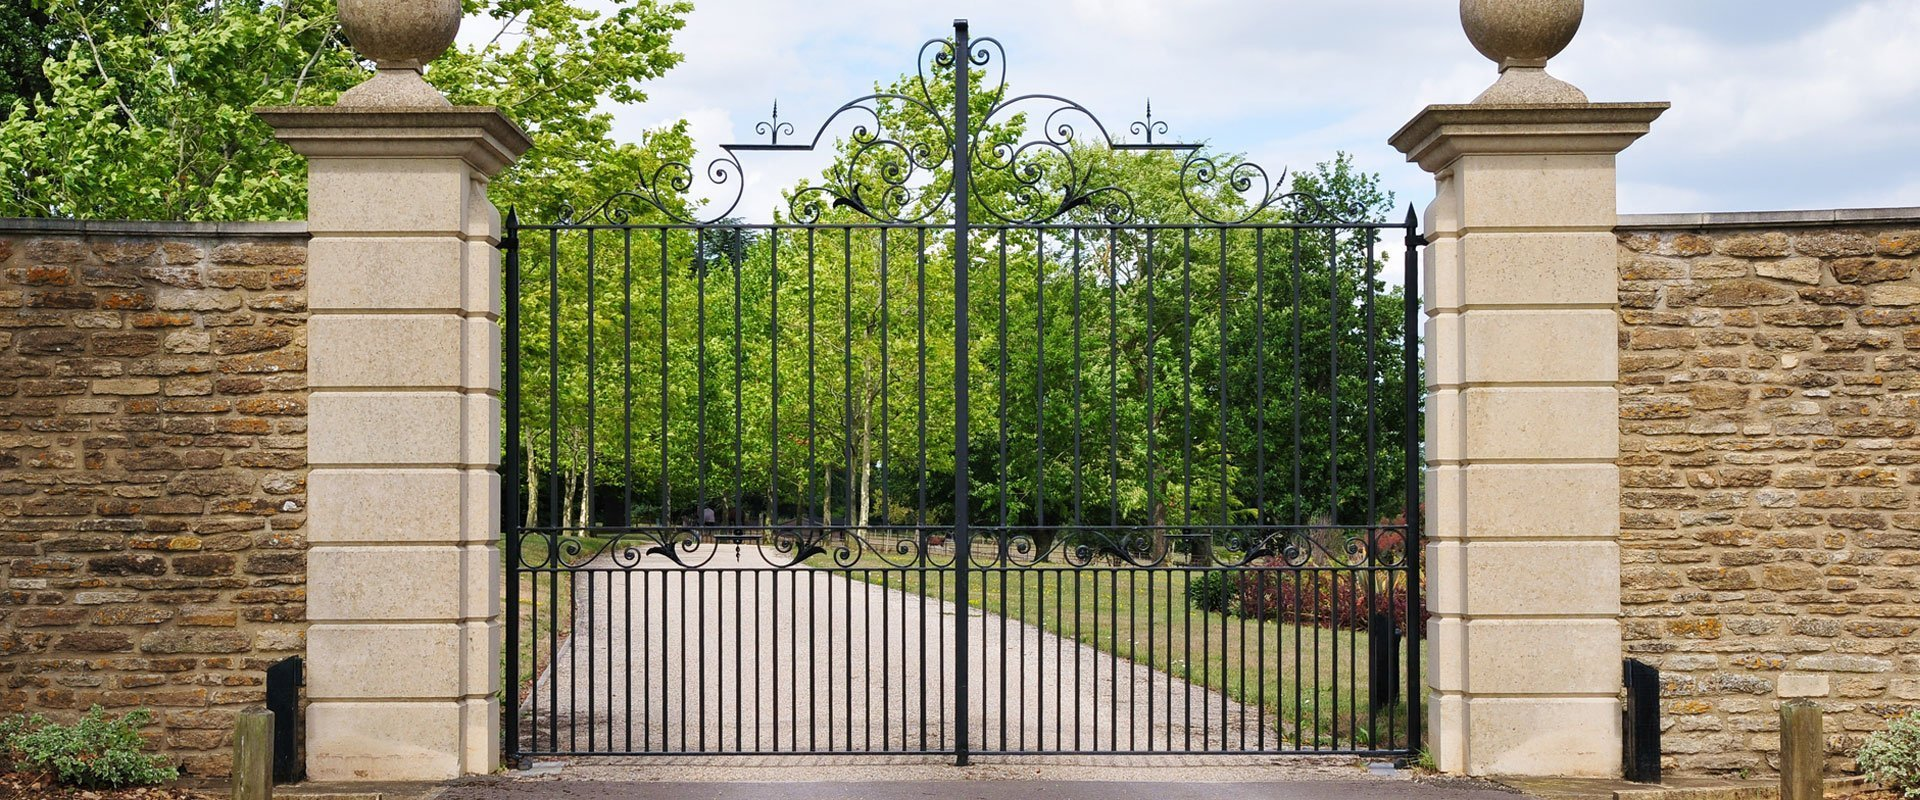 ornate detailed black metal gates with tall sandstone pillars